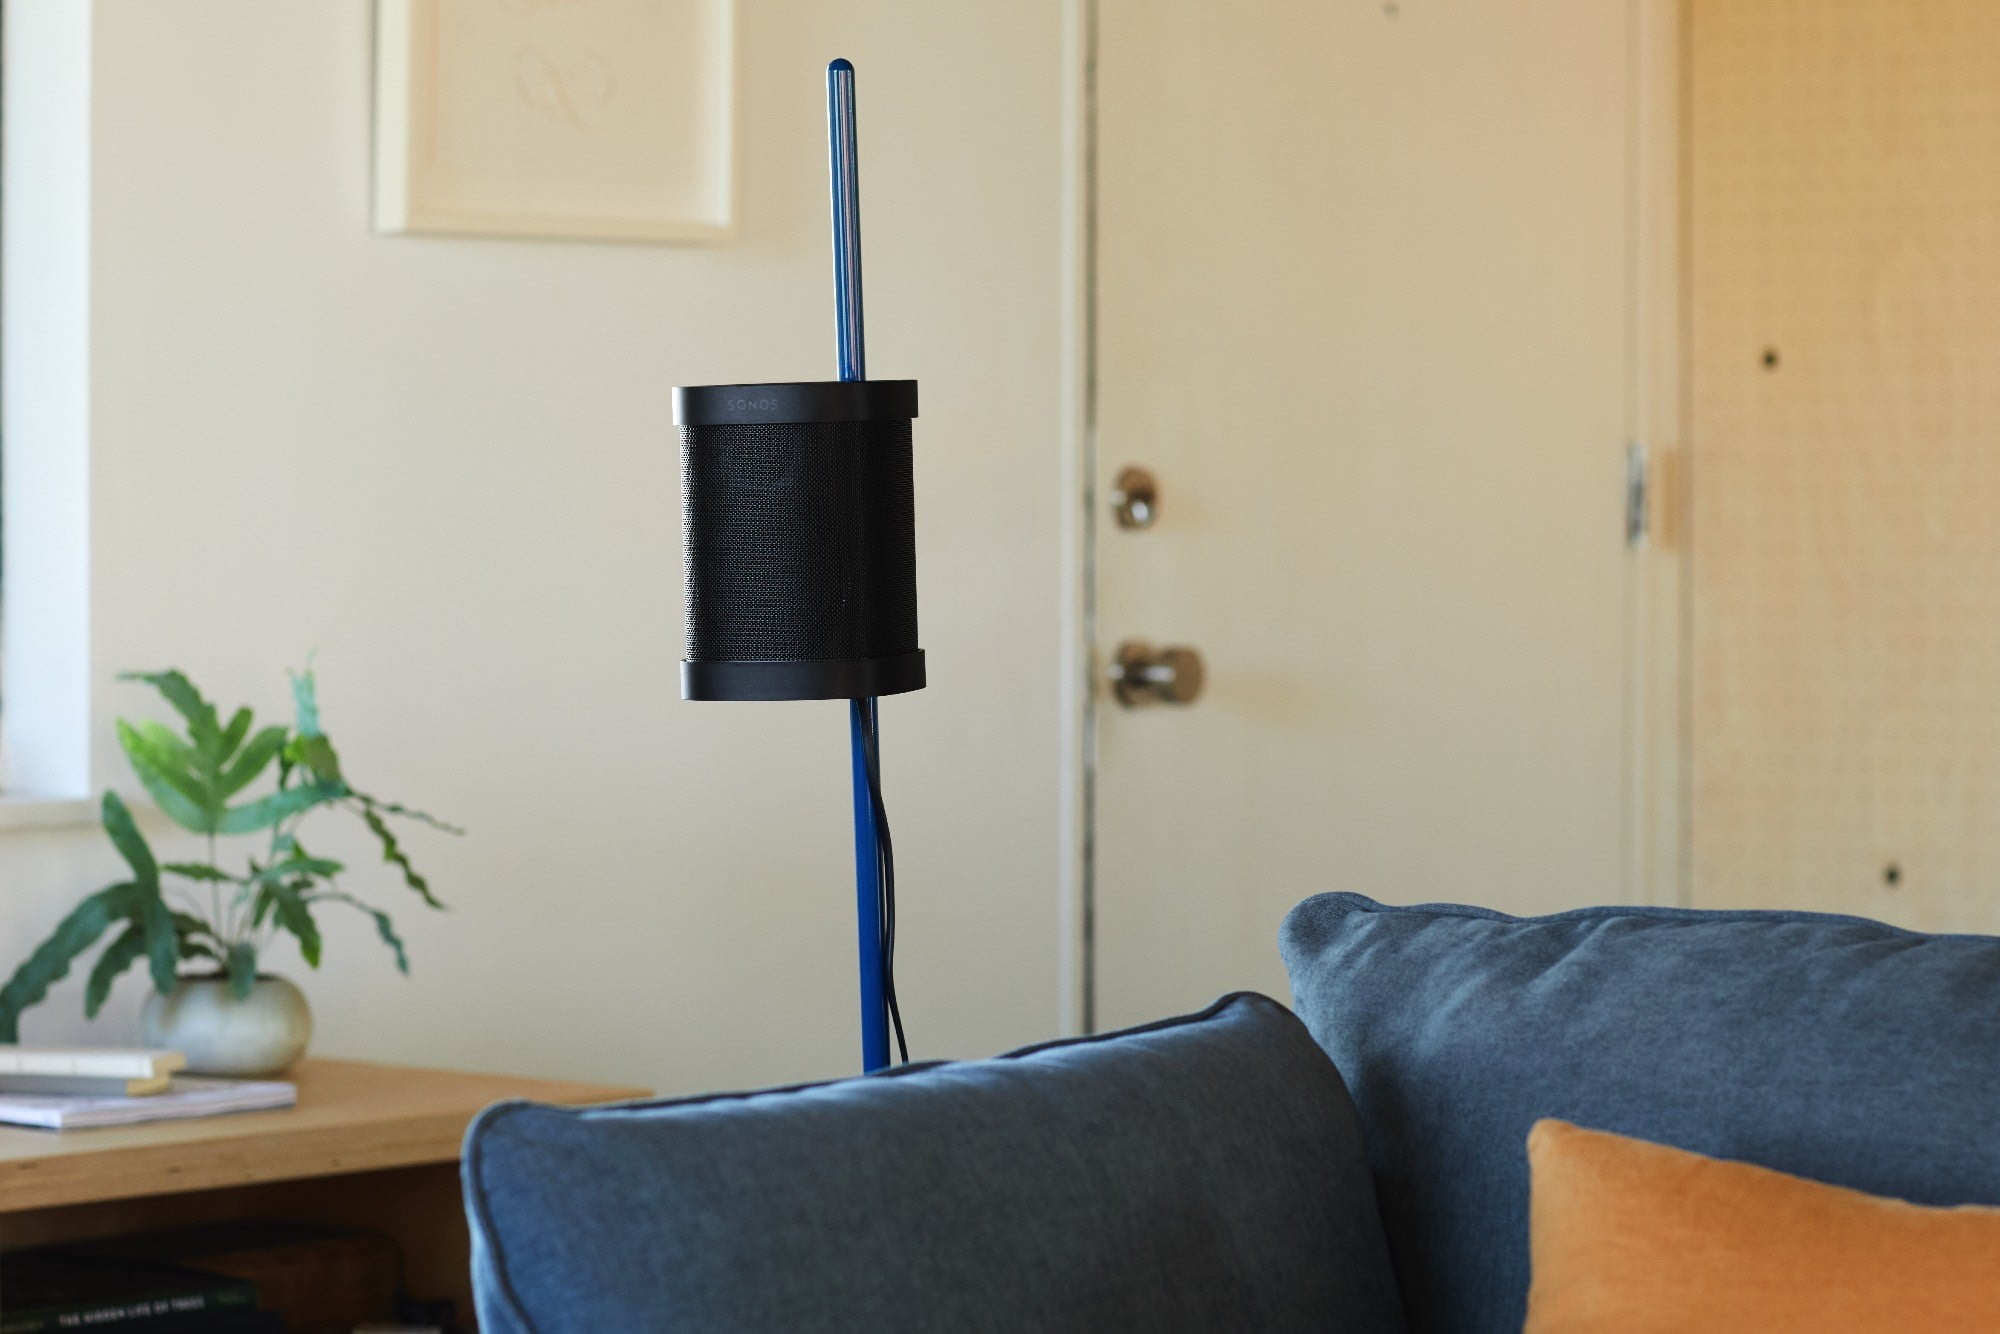 Sonos x Floyd One Stand seen from the front.